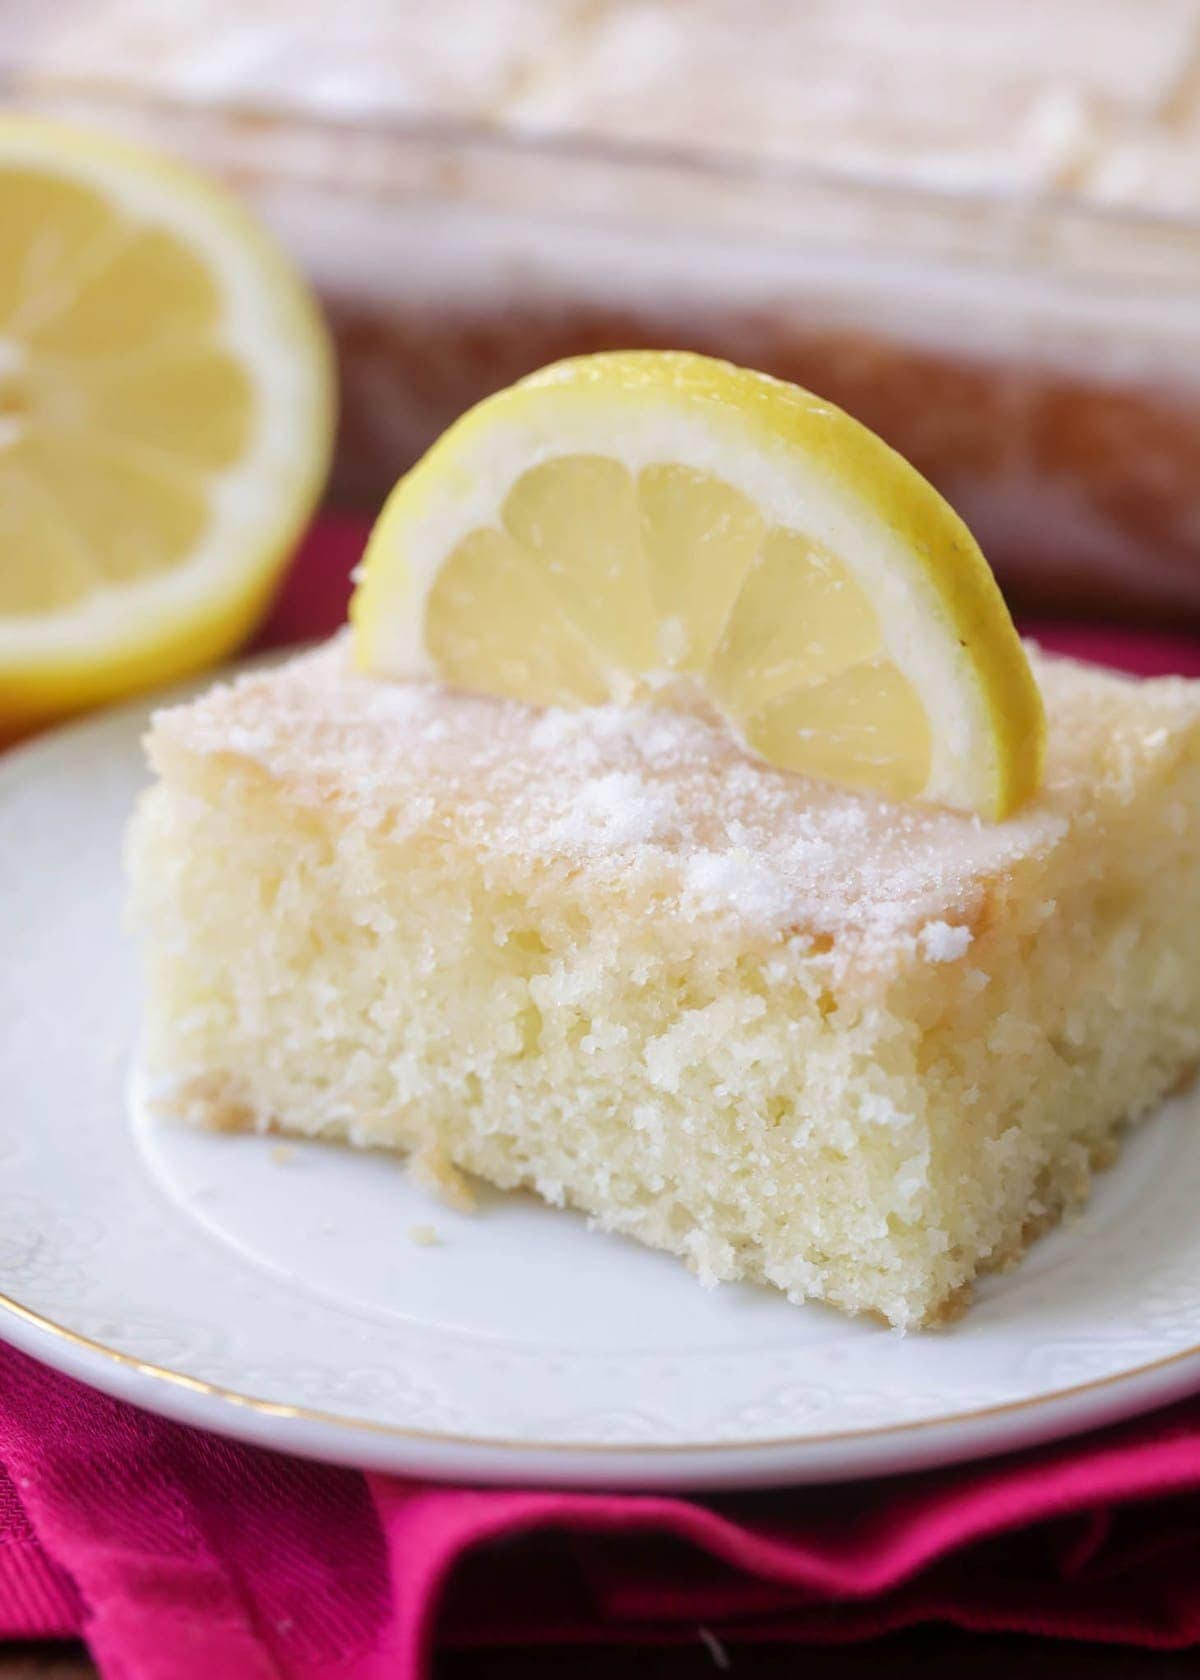 Lemon Buttermilk Sheetcake - Sheetcake baked with a lemon zest, topped with a delicious lemony glaze! The perfect amount of lemon flavor - not too tart, but just enough to give you a delicious lemon taste!